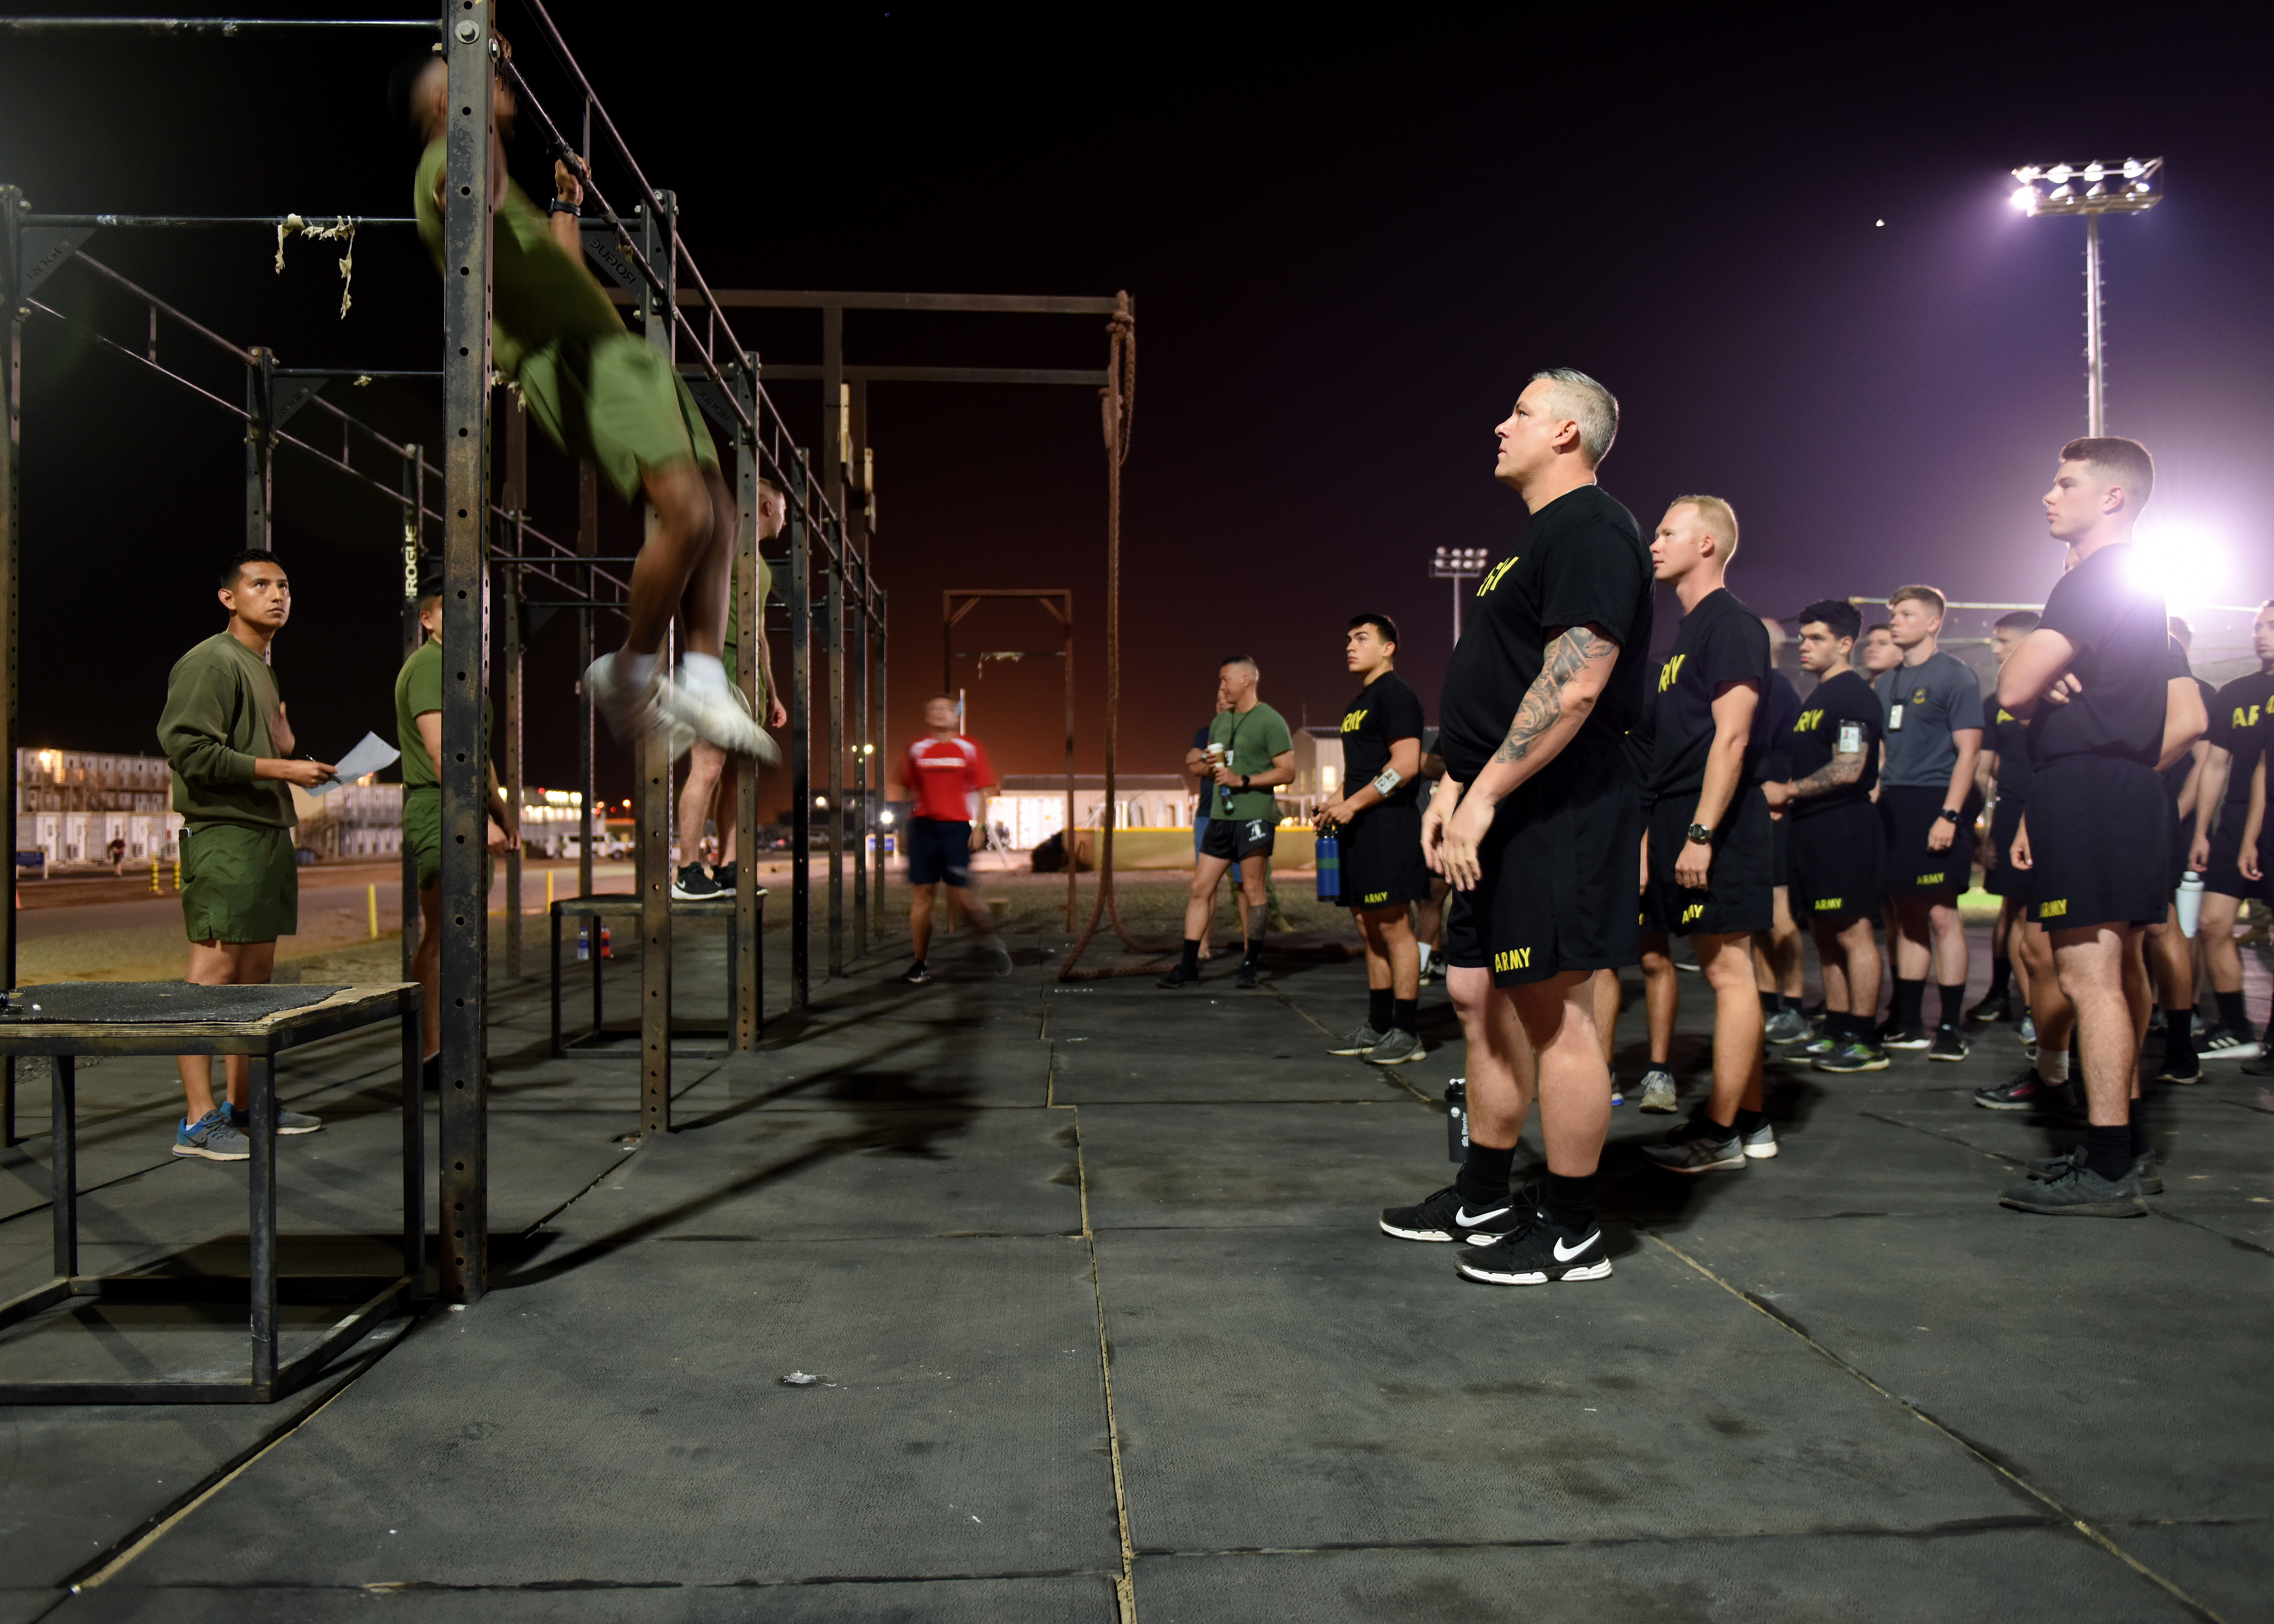 U.S. Marines assigned to Combined Joint Task Force-Horn of Africa (CJTF-HOA) demonstrate pull-ups during the joint fitness test portion of the Joint Warrior Competition at Camp Lemonnier, Djibouti, Feb. 26, 2019. U.S. service members assigned to CJTF-HOA and Camp Lemonnier participated in the fitness test, which consisted of components of each services' physical fitness exams to include Marine pull-ups. (U.S. Air Force Photo by Staff Sgt. Franklin R. Ramos)